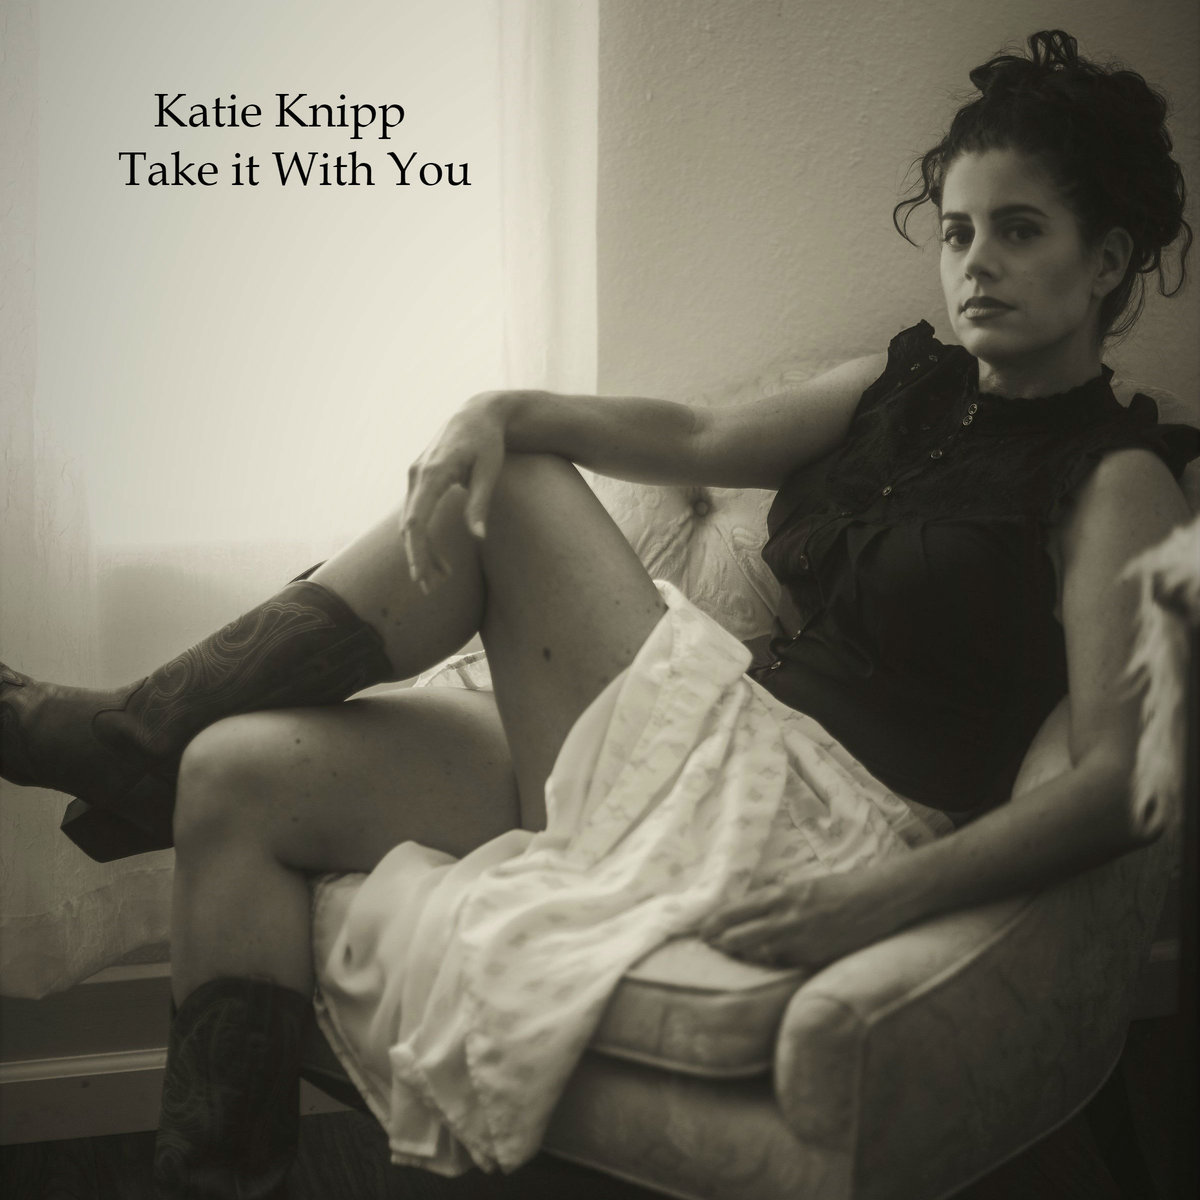 Katie Knipp advises to Take It With You